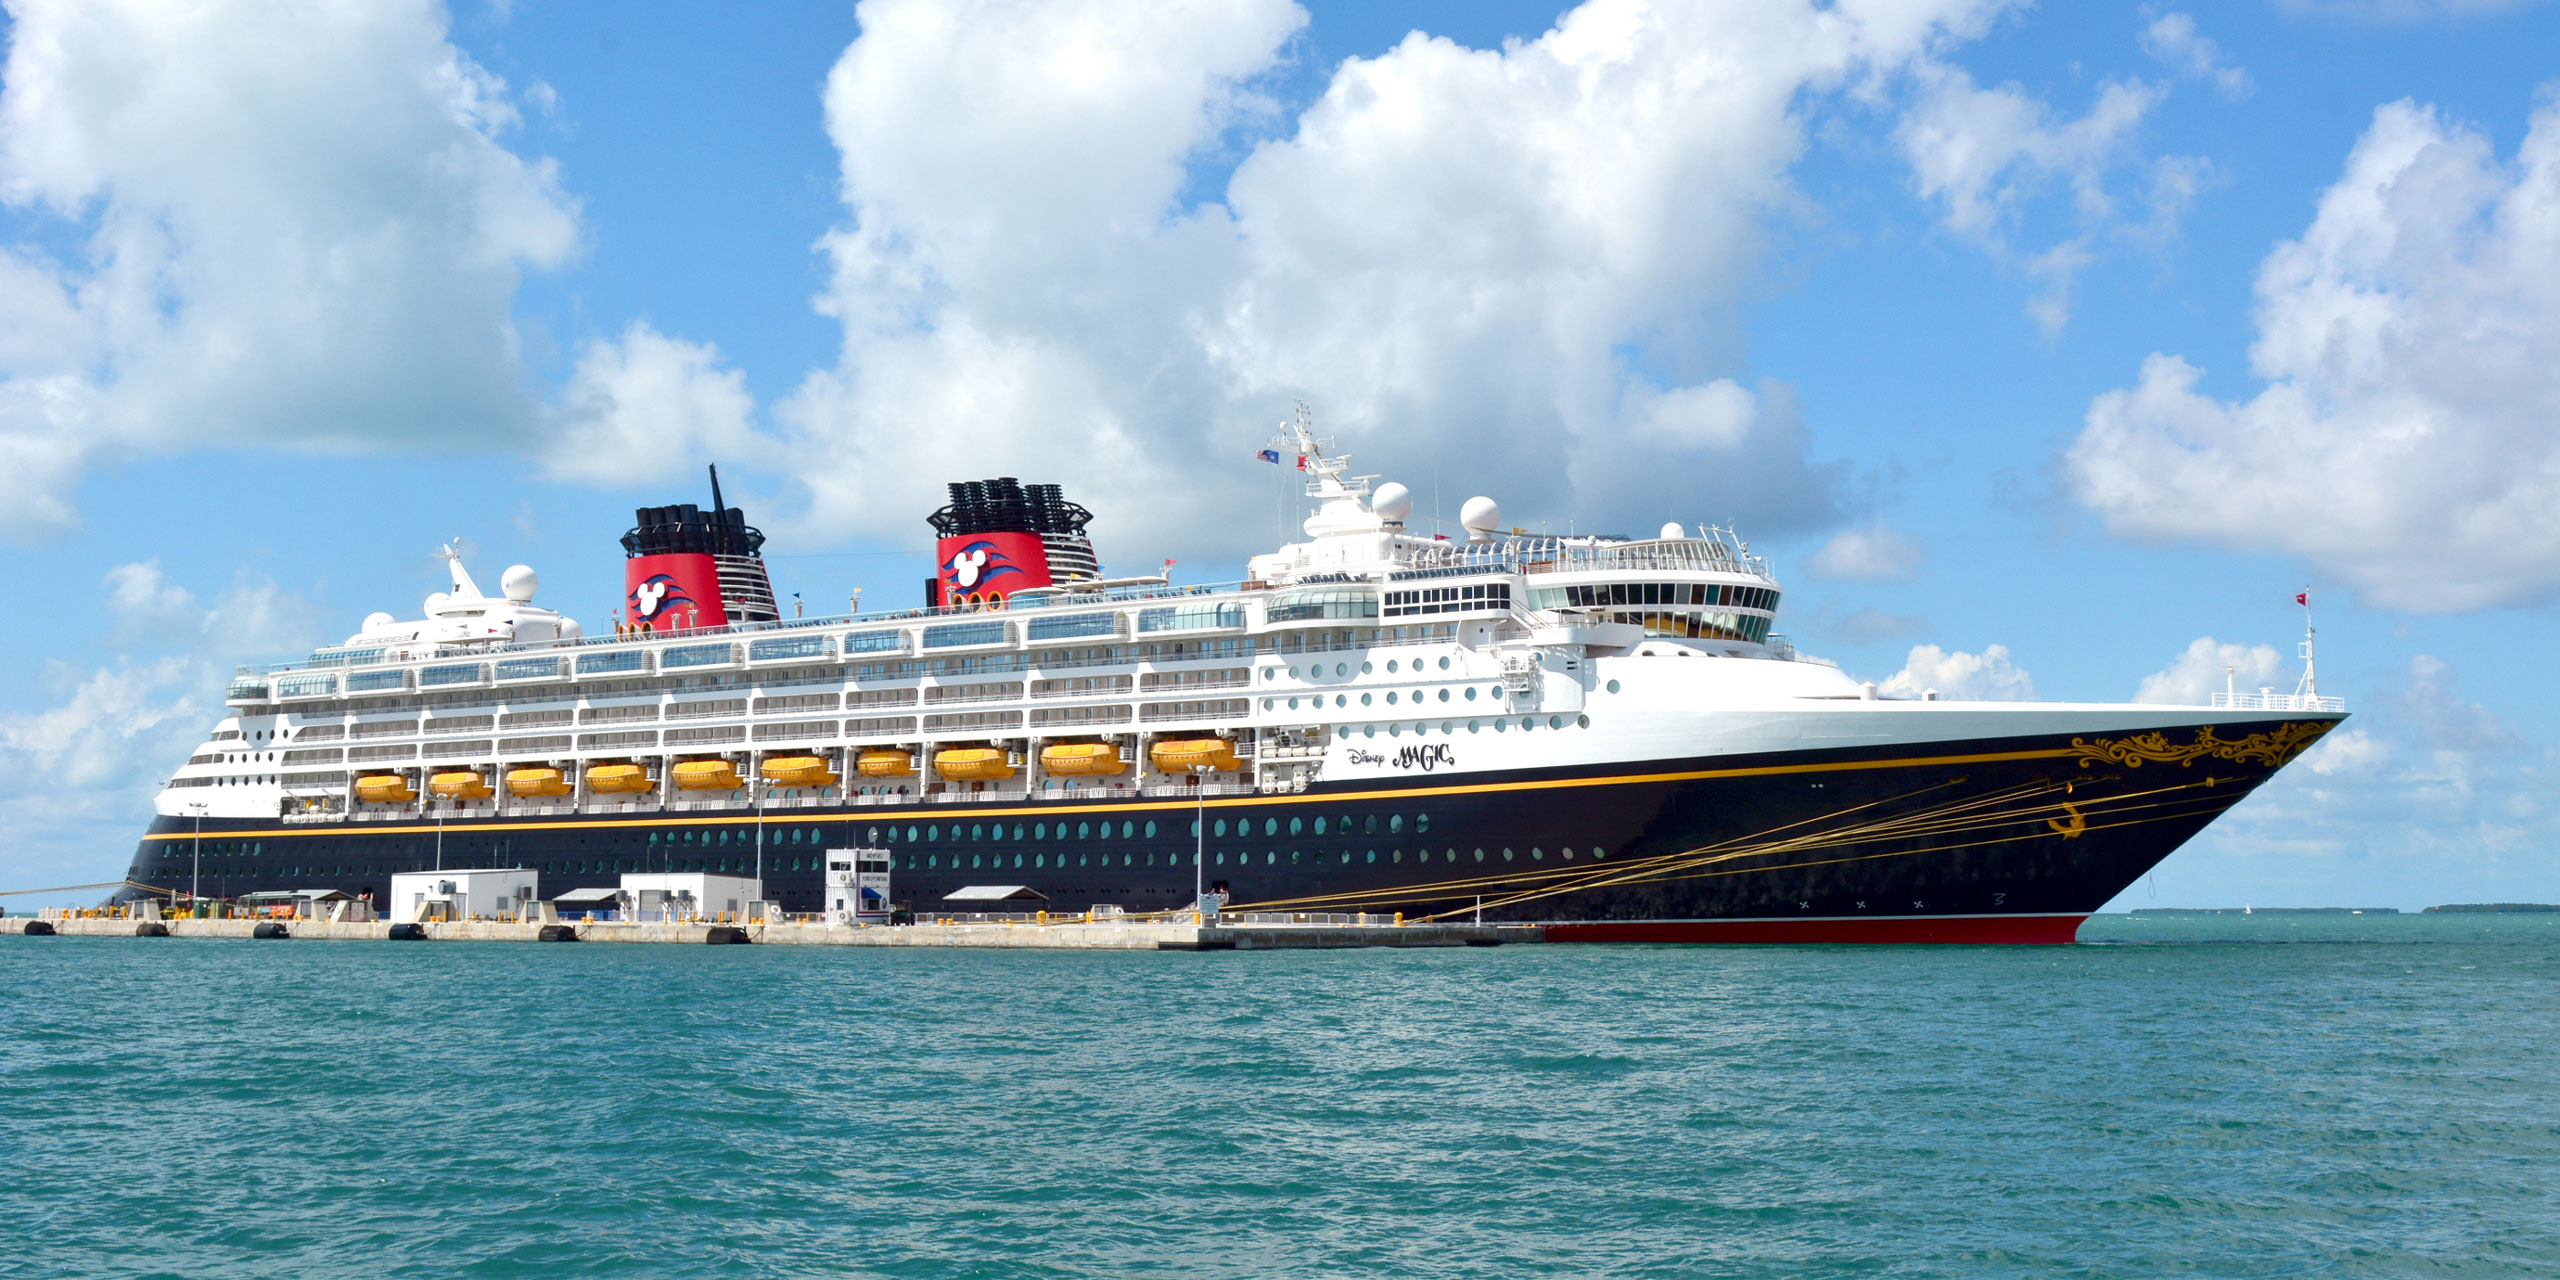 Disney Cruise Ship; Courtesy of Chuck Wagner/Shutterstock.com